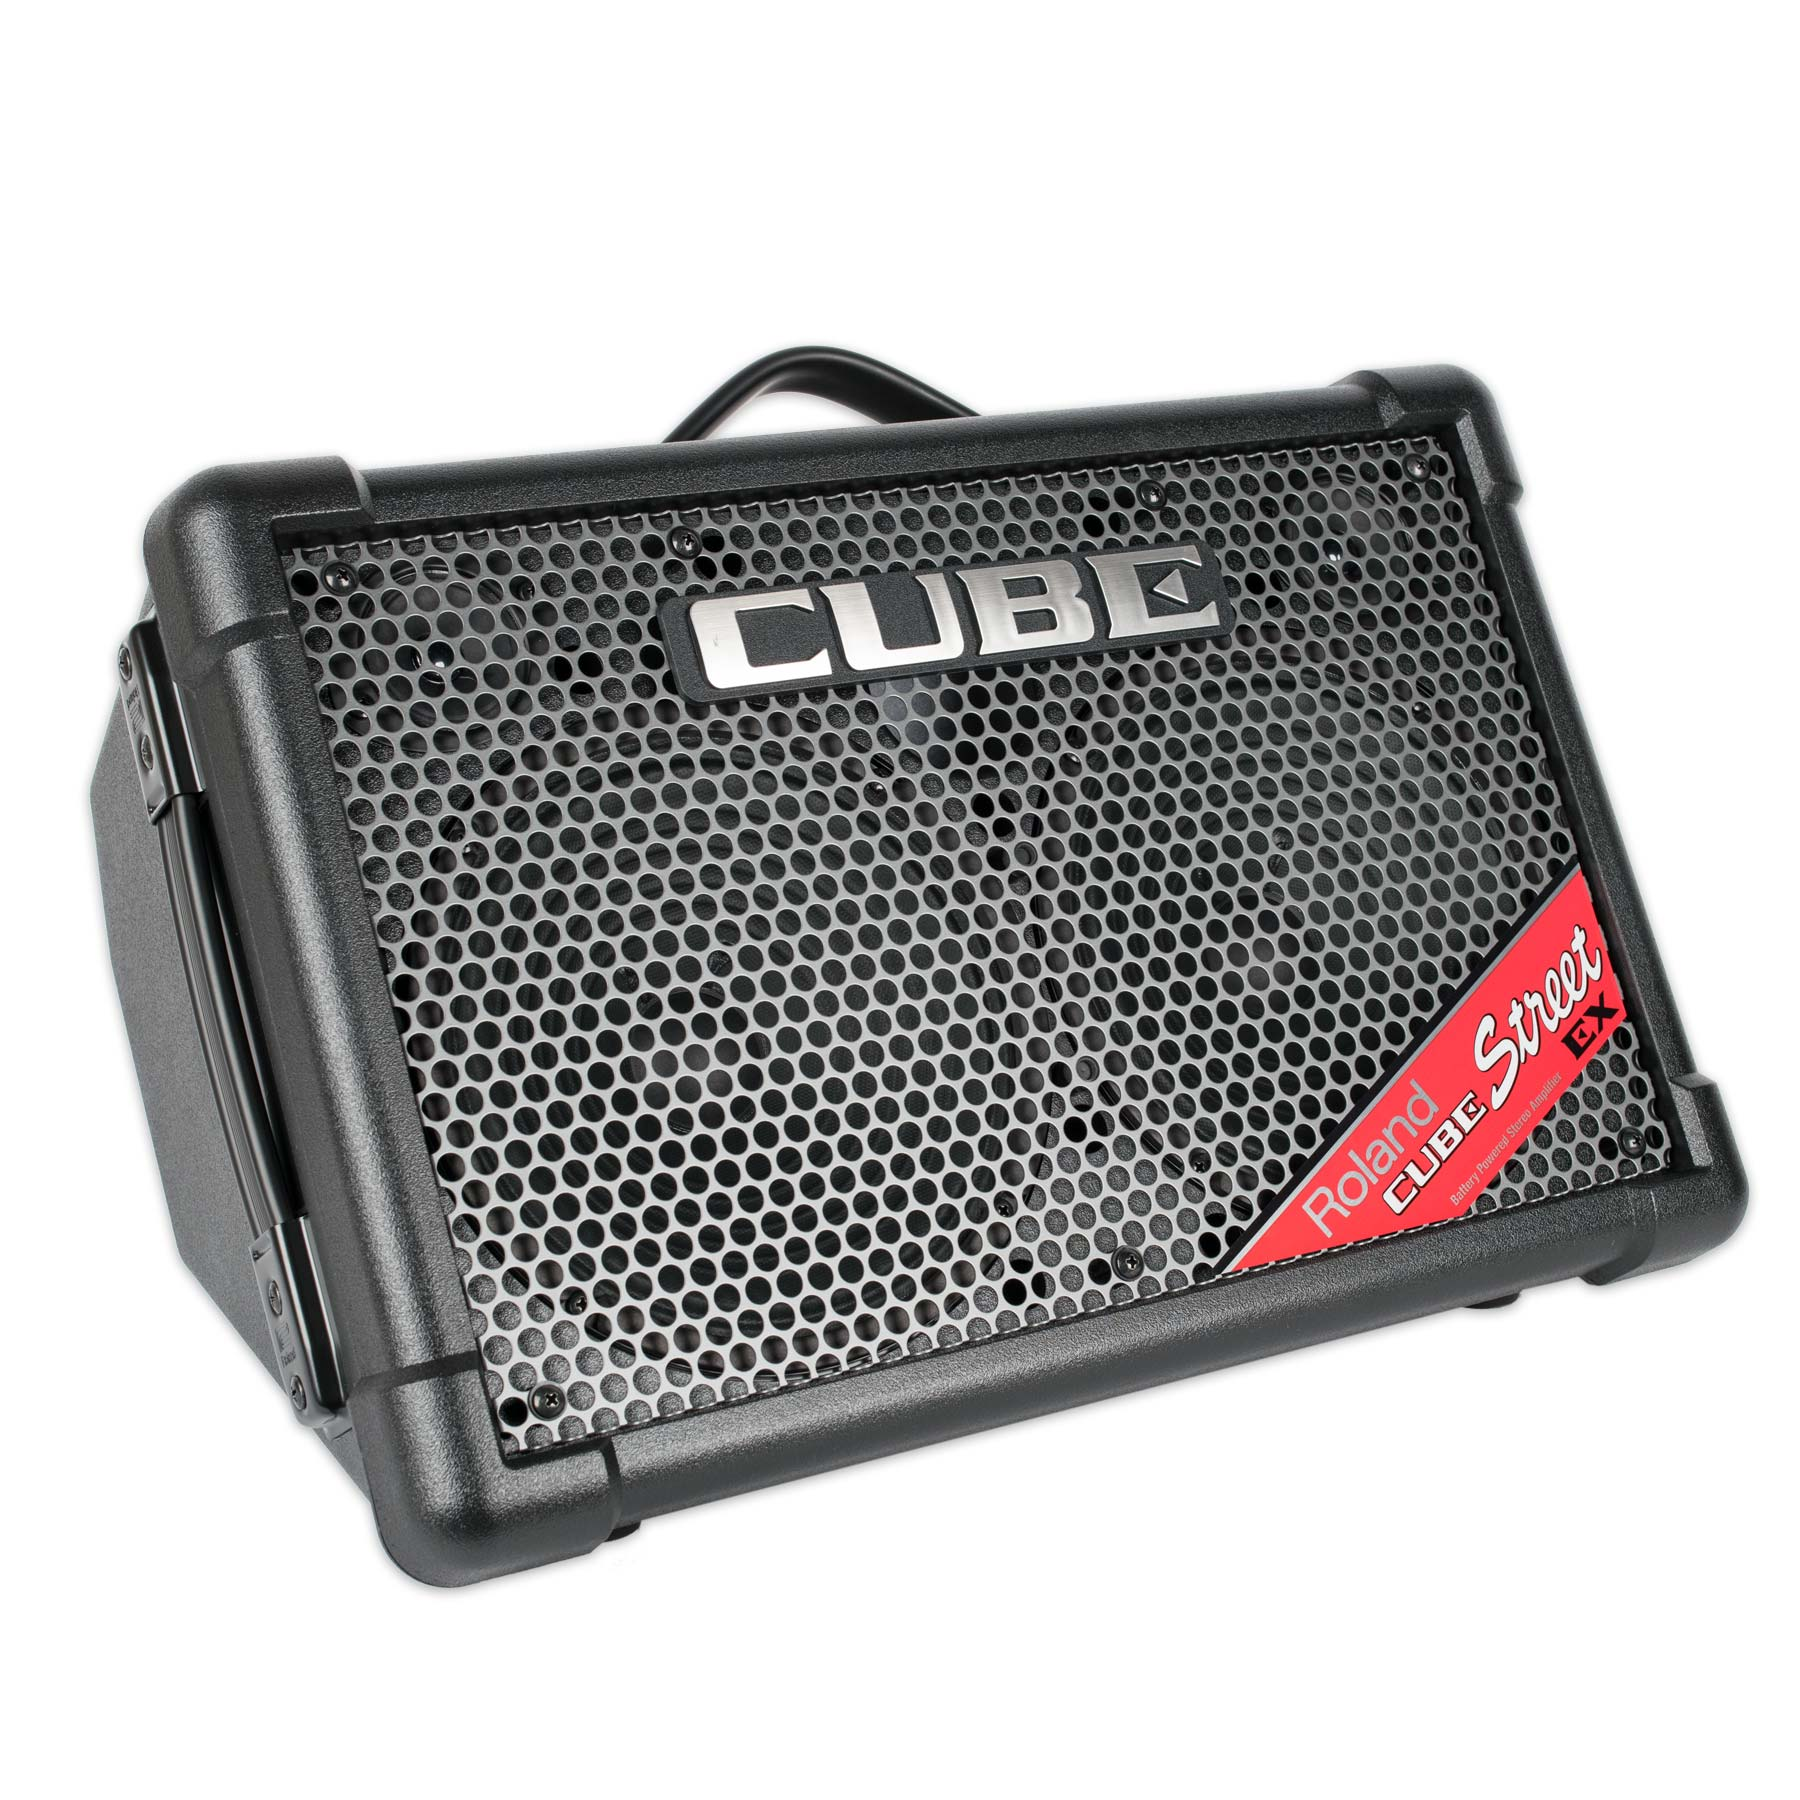 ROLAND CUBE STREET EX BATTERY POWERED GUITAR AMPLIFIER